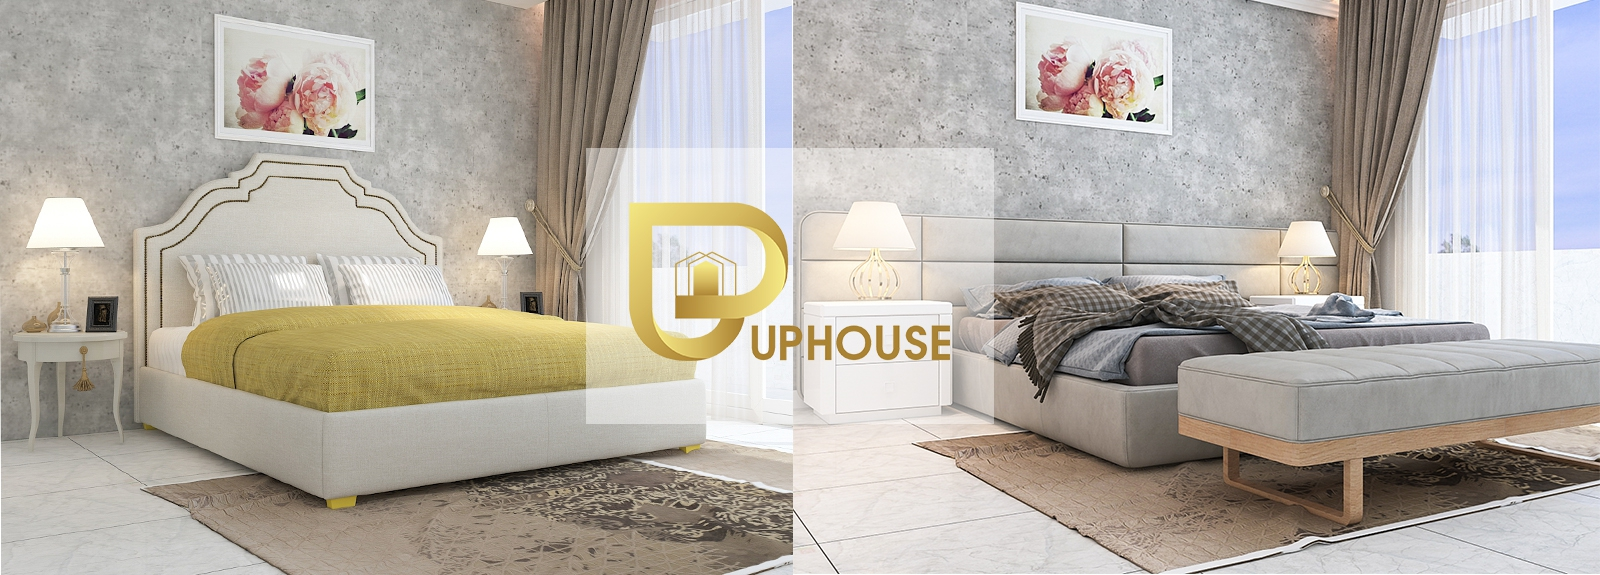 Uphouse-noithat-1